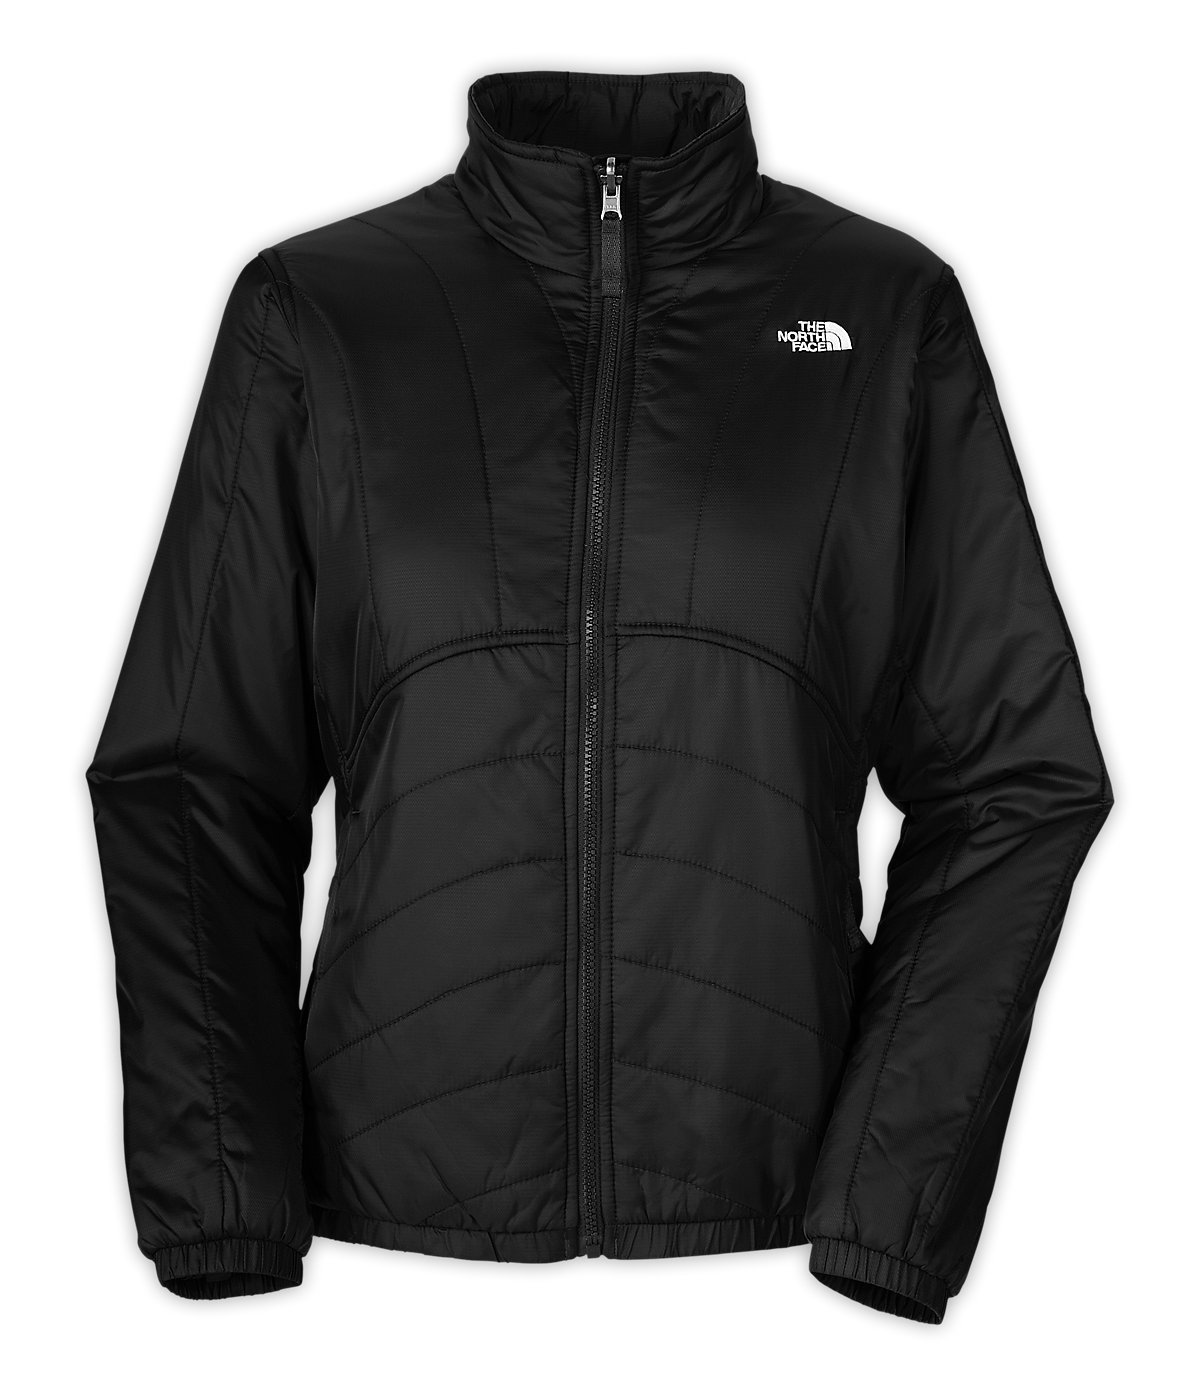 The North Face Deuces Thermal Jacket Style: APRM-001 Size: M by The North Face